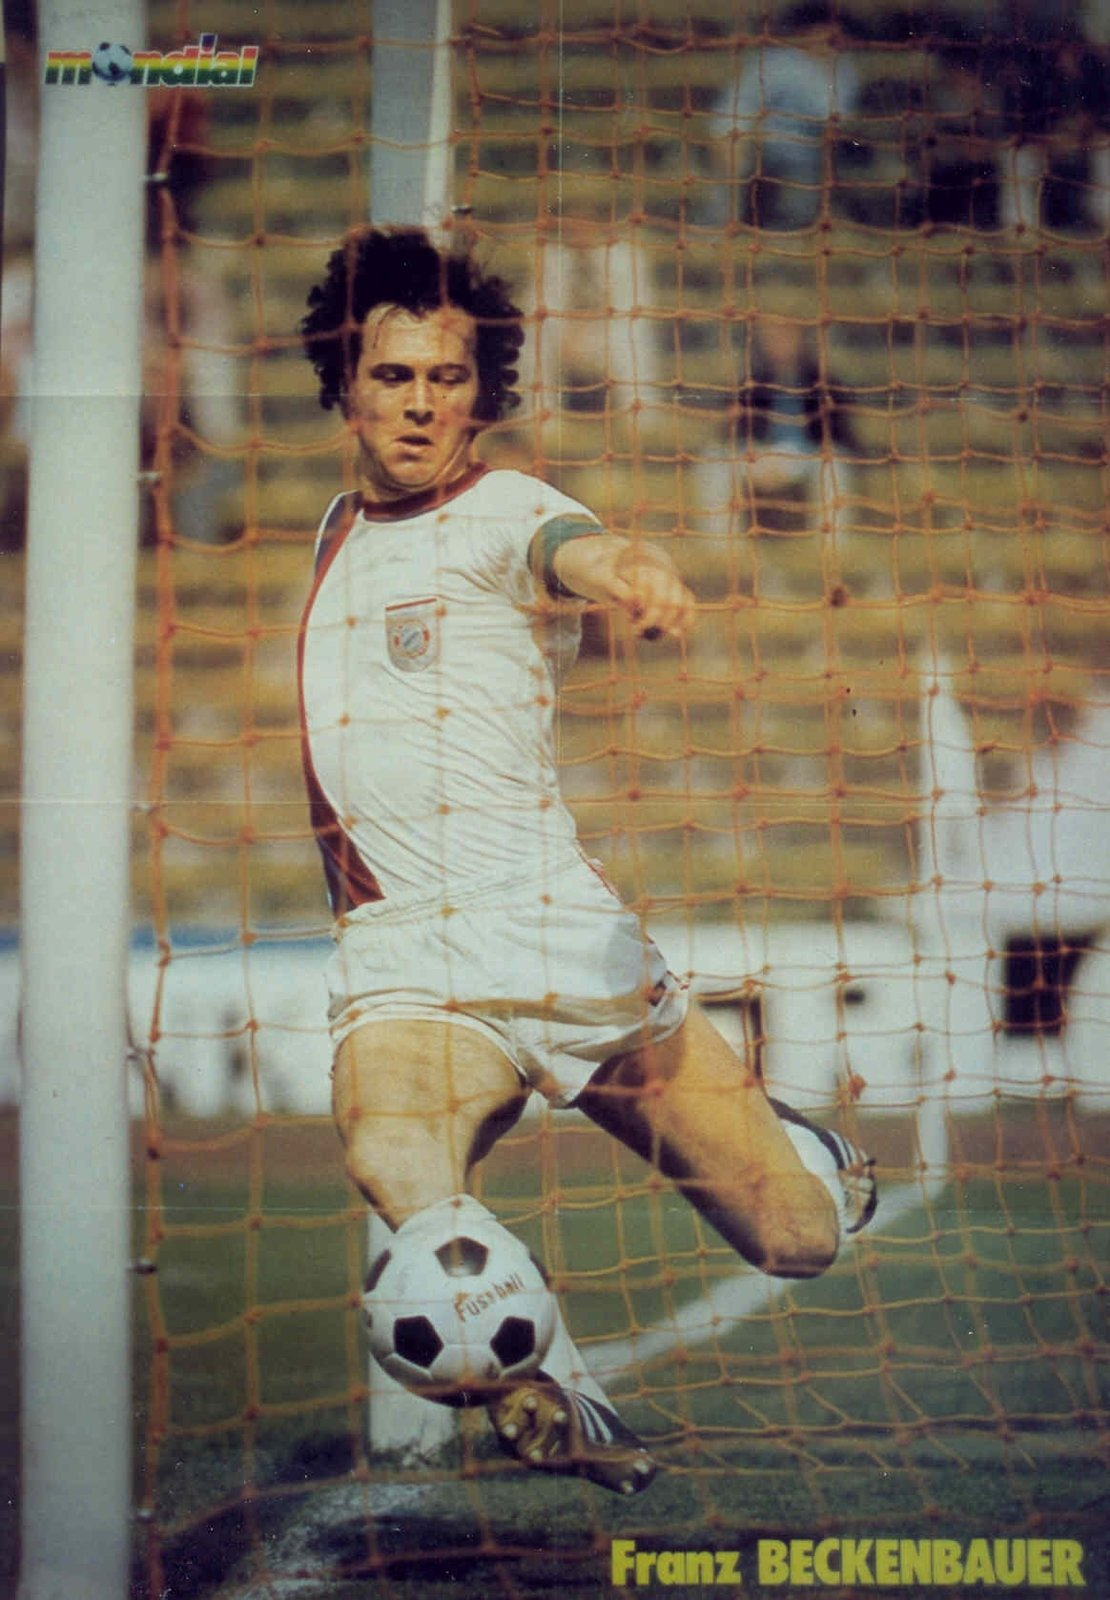 Franz Beckenbauer, unknown, Sportimonium, Hofstade, In Copyright